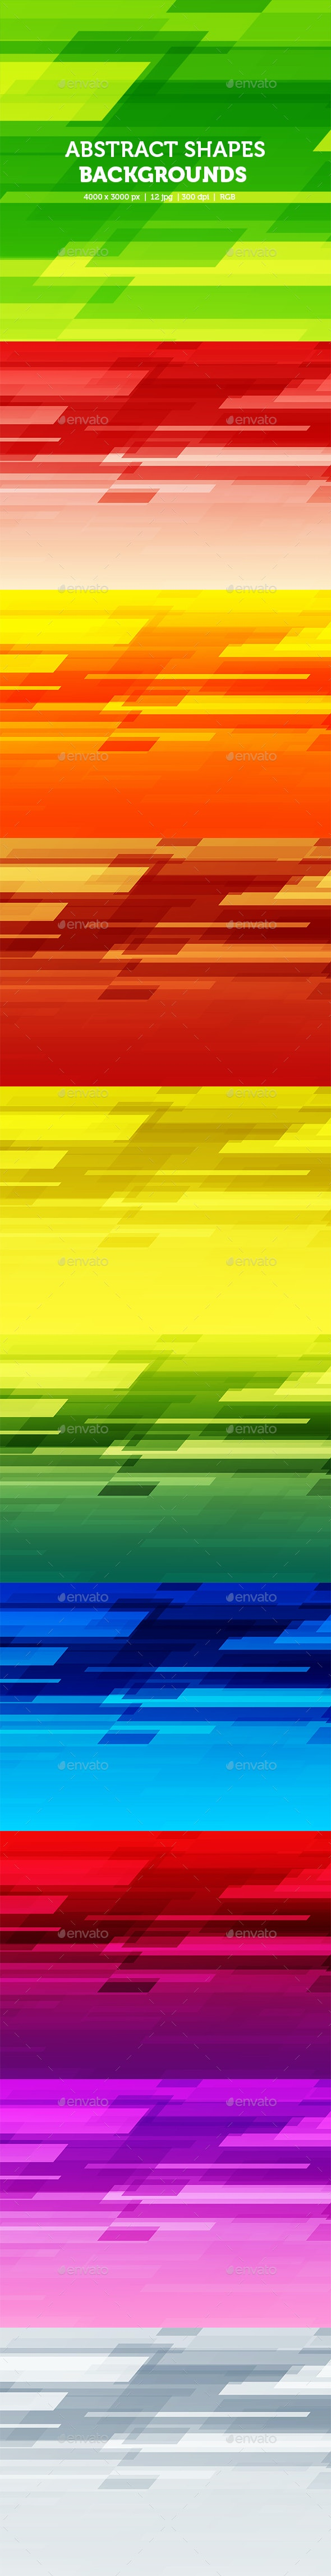 Abstract Shapes Background - Abstract Backgrounds